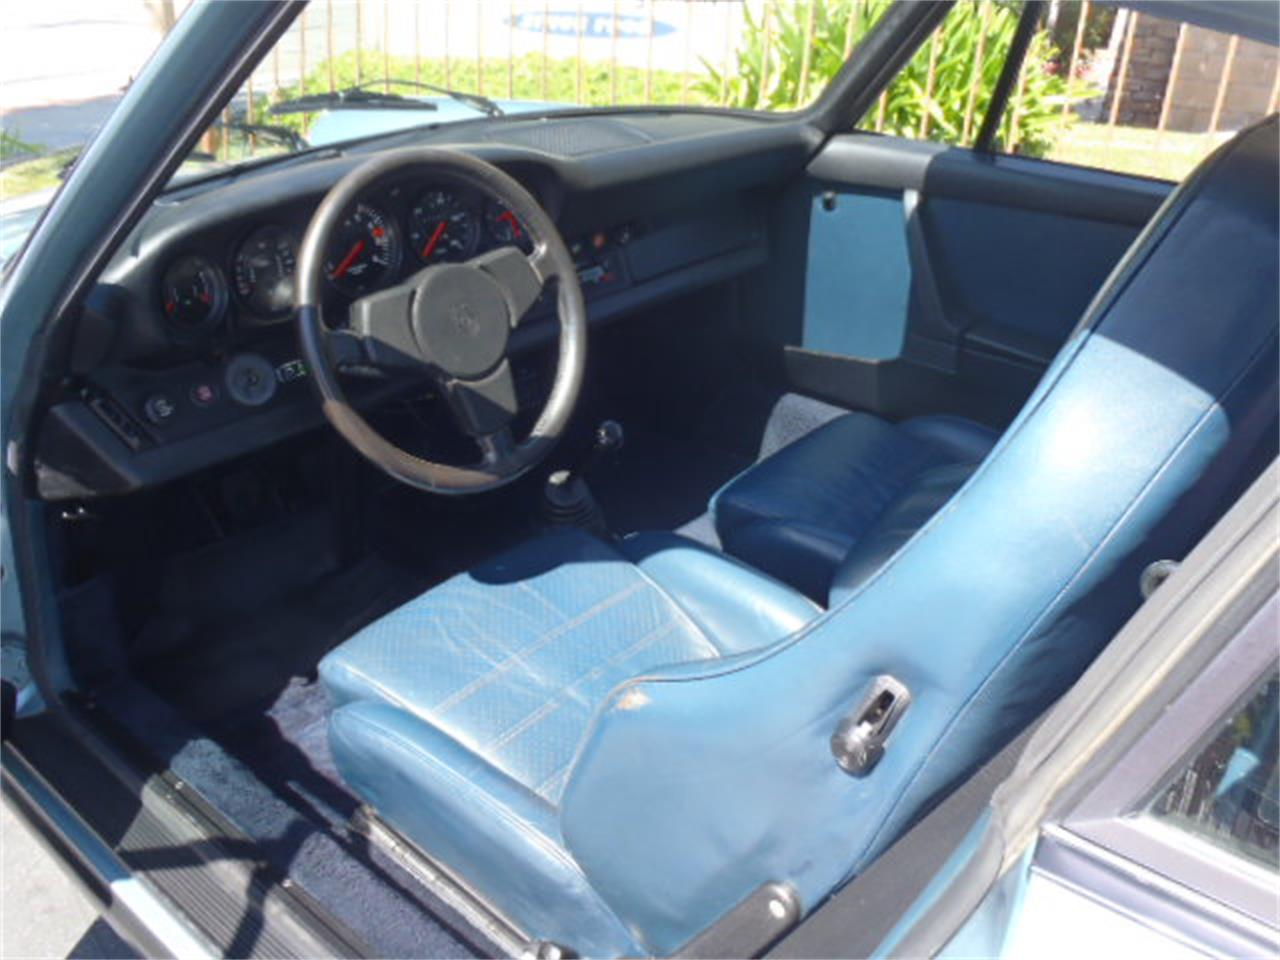 1975 Porsche Carrera for sale in Simi Valley, CA – photo 7